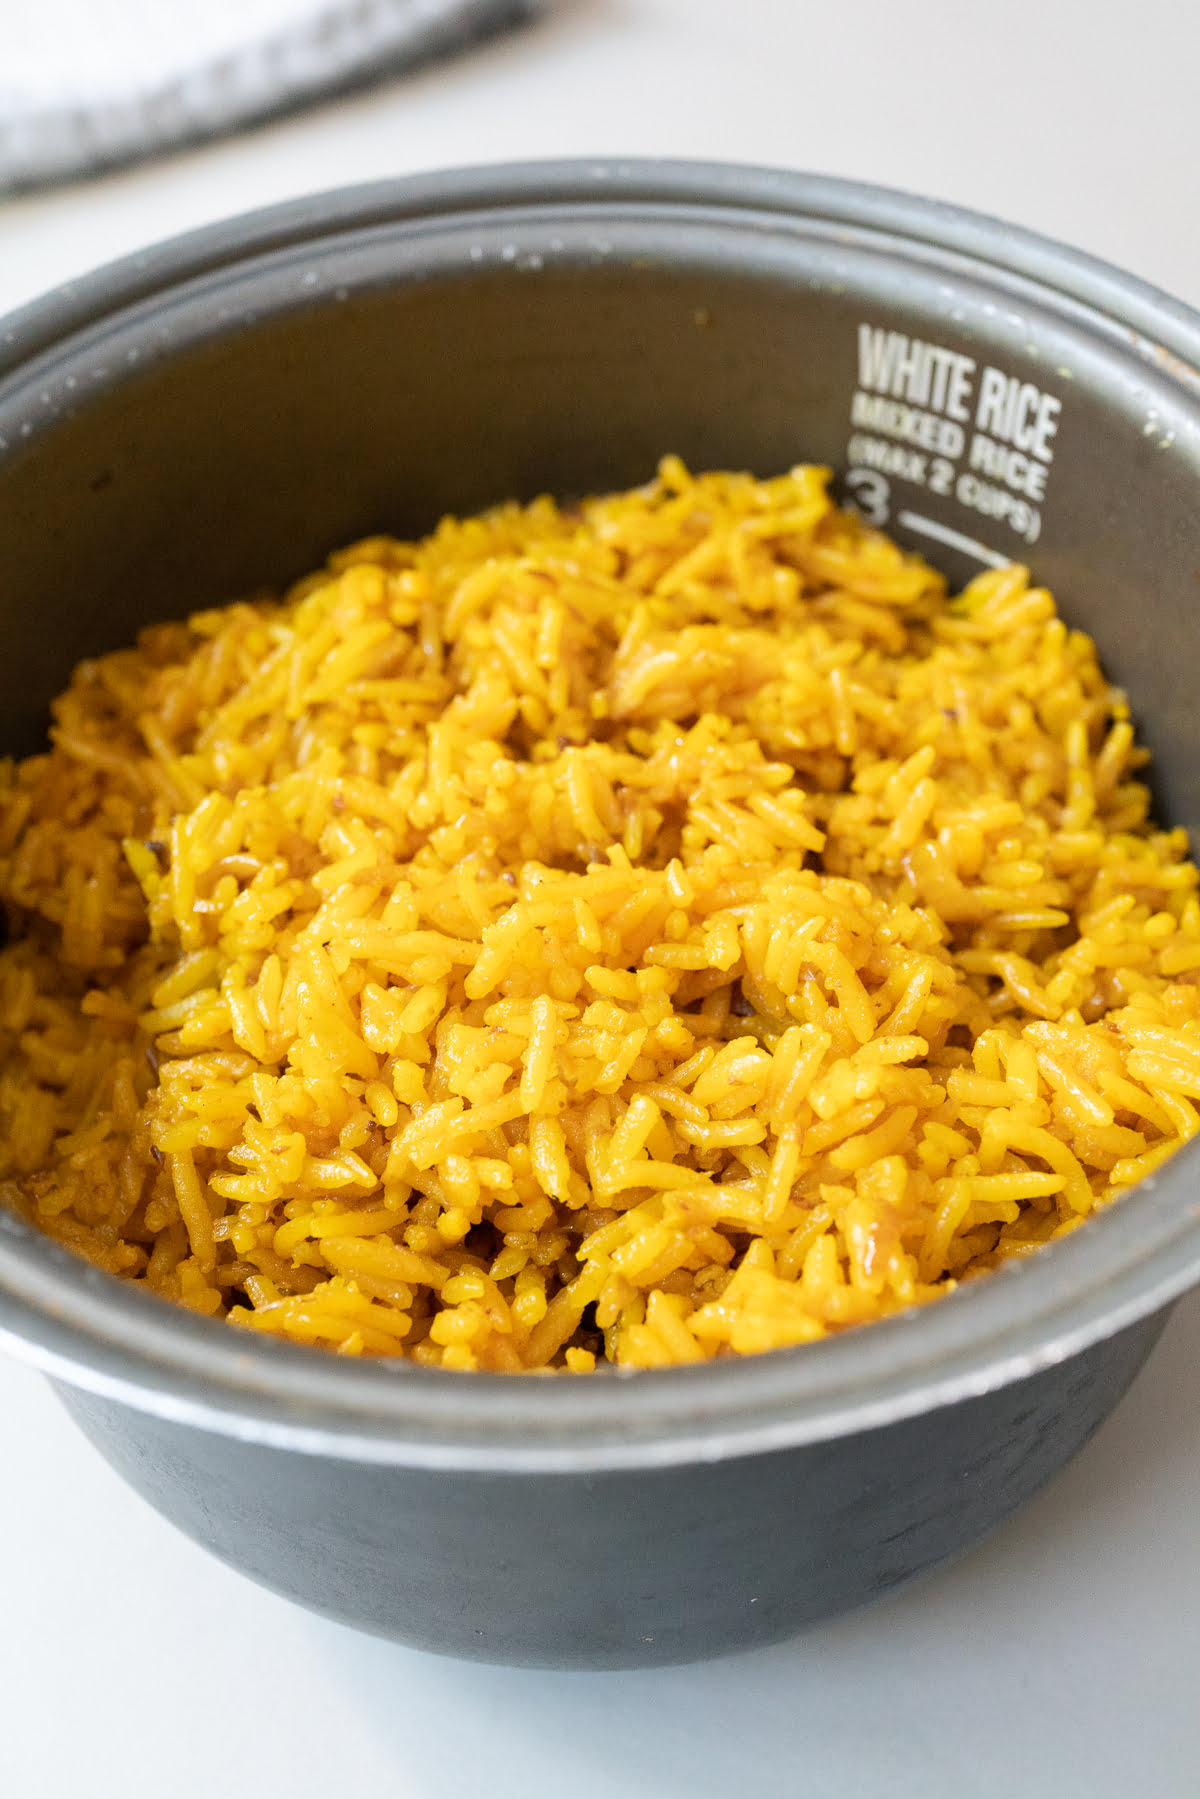 A rice cooker pot filled with freshly cooked turmeric rice.